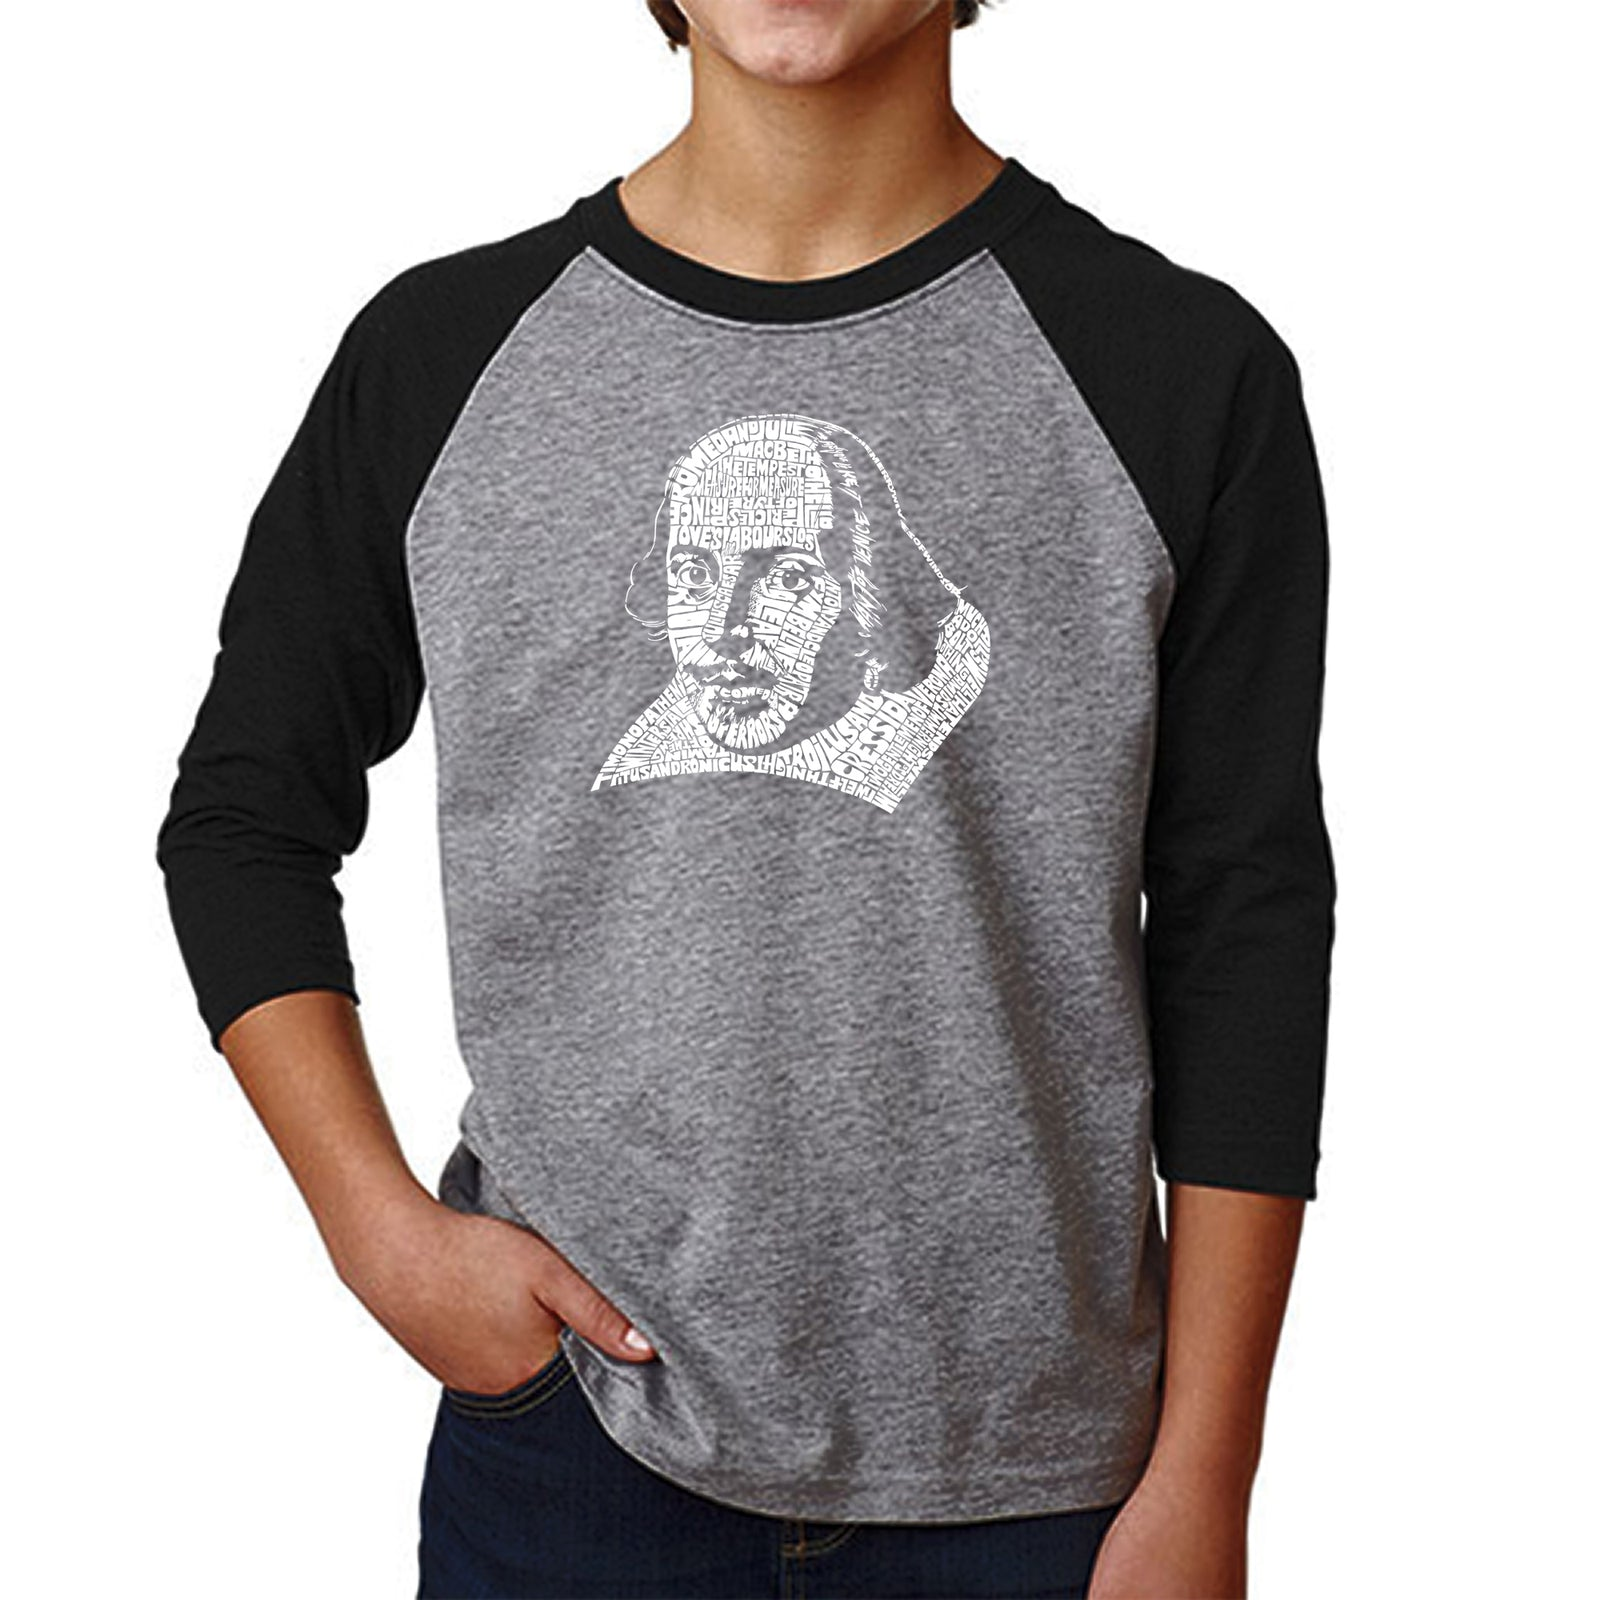 Boy's Raglan Baseball Word Art T-shirt - THE TITLES OF ALL OF WILLIAM SHAKESPEARE'S COMEDIES & TRAGEDIES